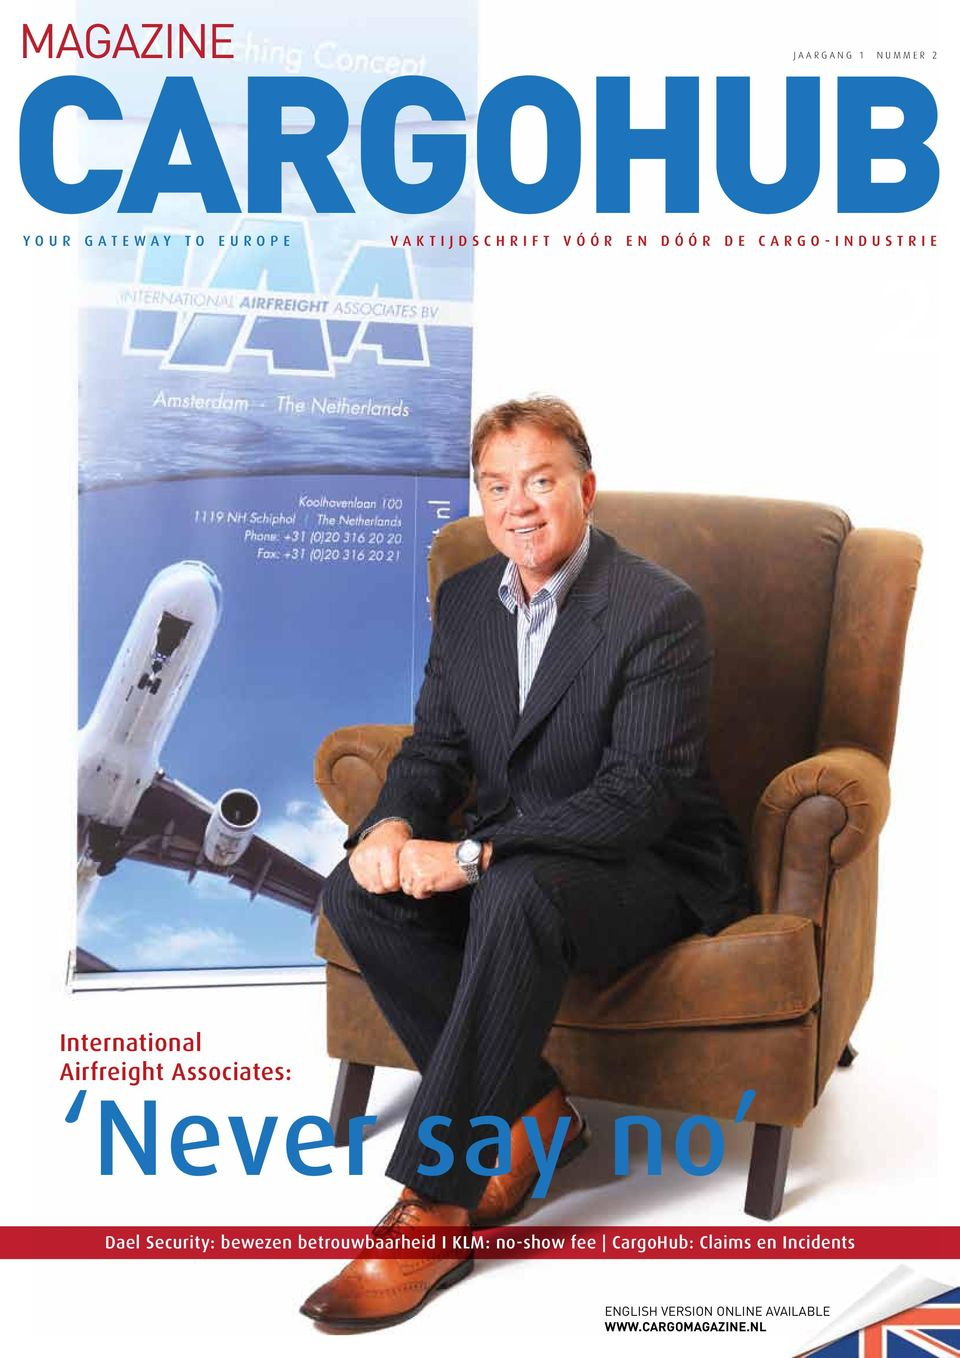 International Airfreight Associates: Never say no CARGO ENGLISH VERSION ONLINE AVAILABLE